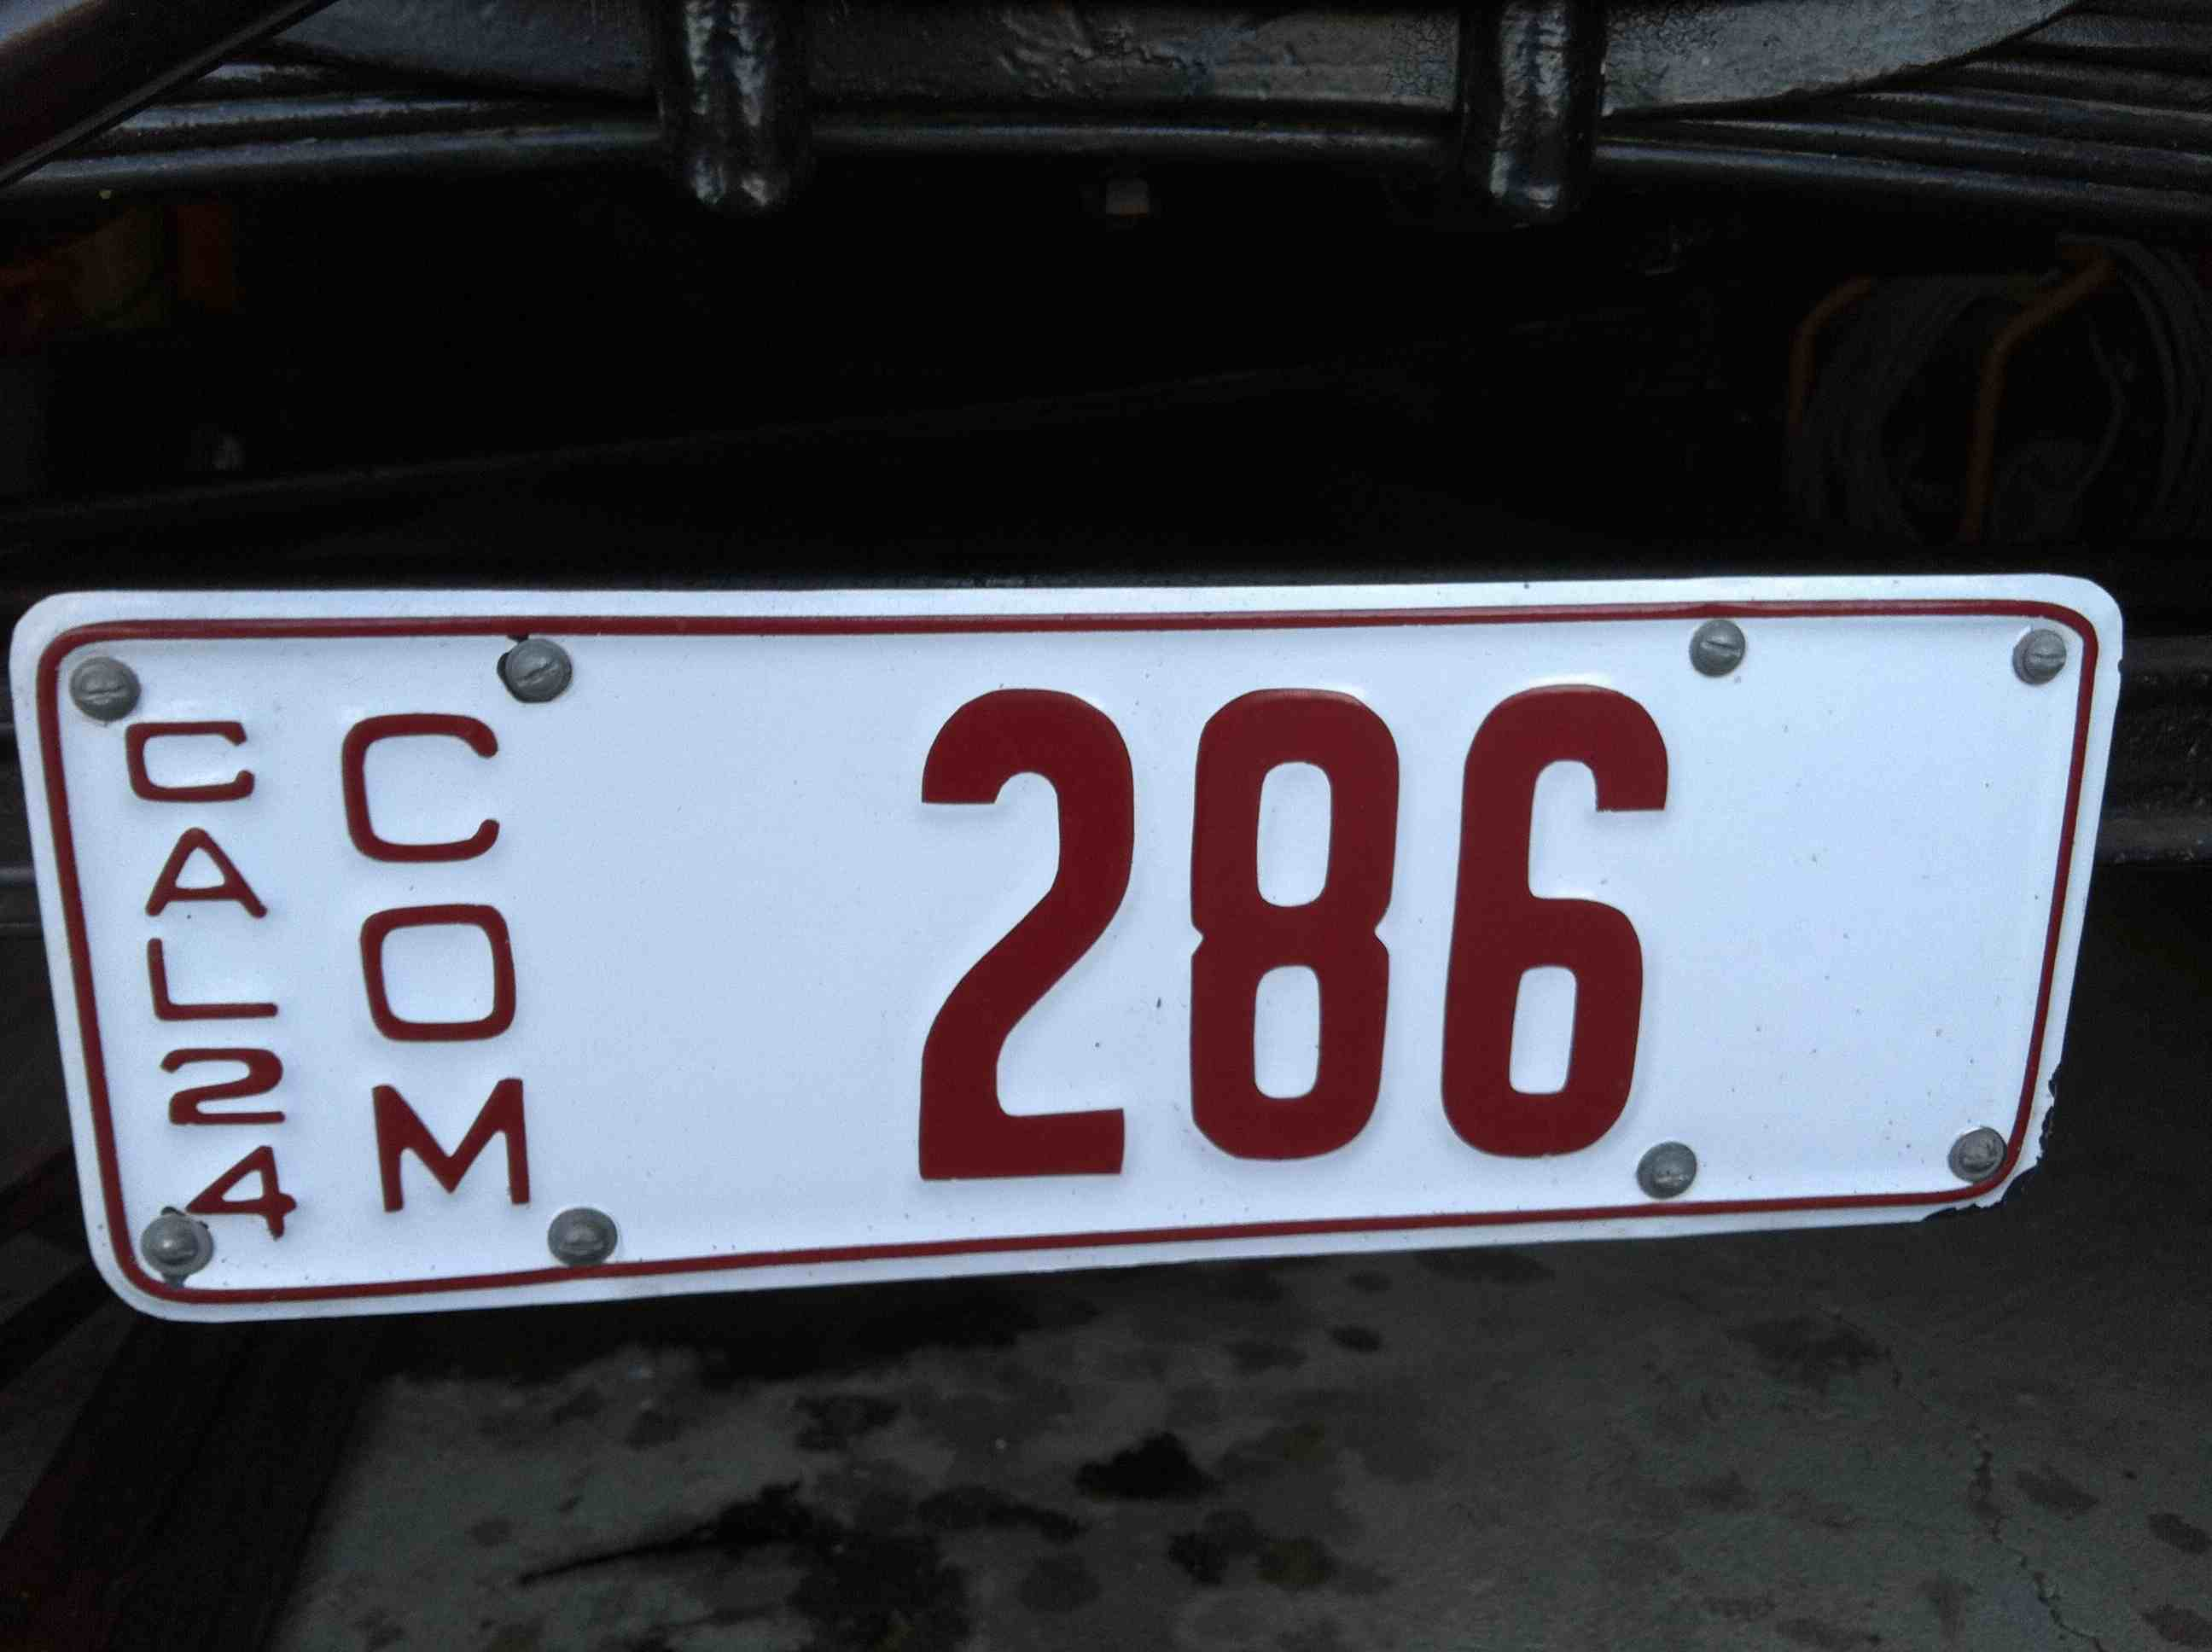 1924 California commercial plate